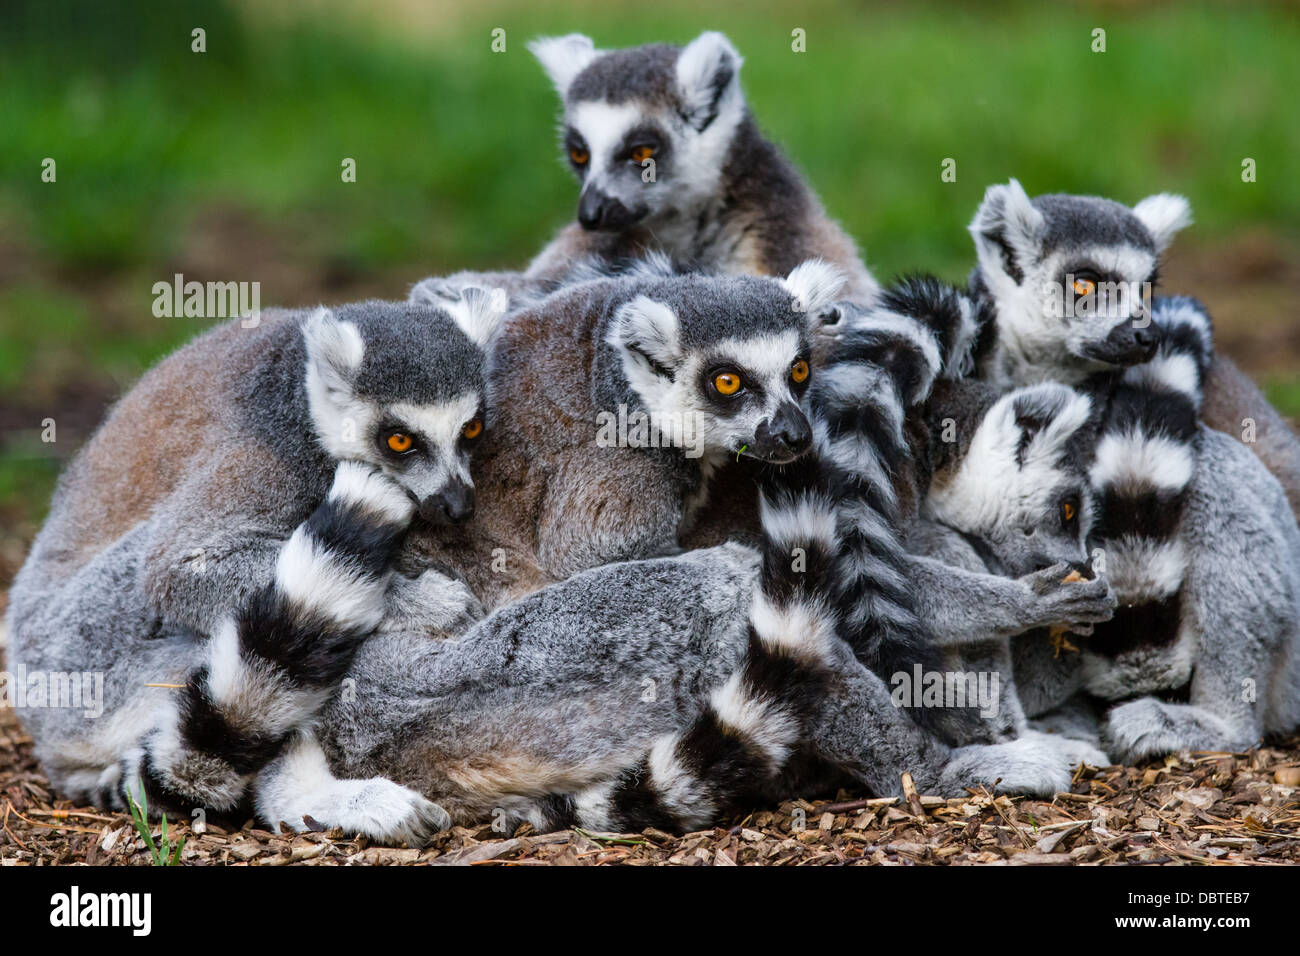 A family of ring-tailed lemurs - Stock Image